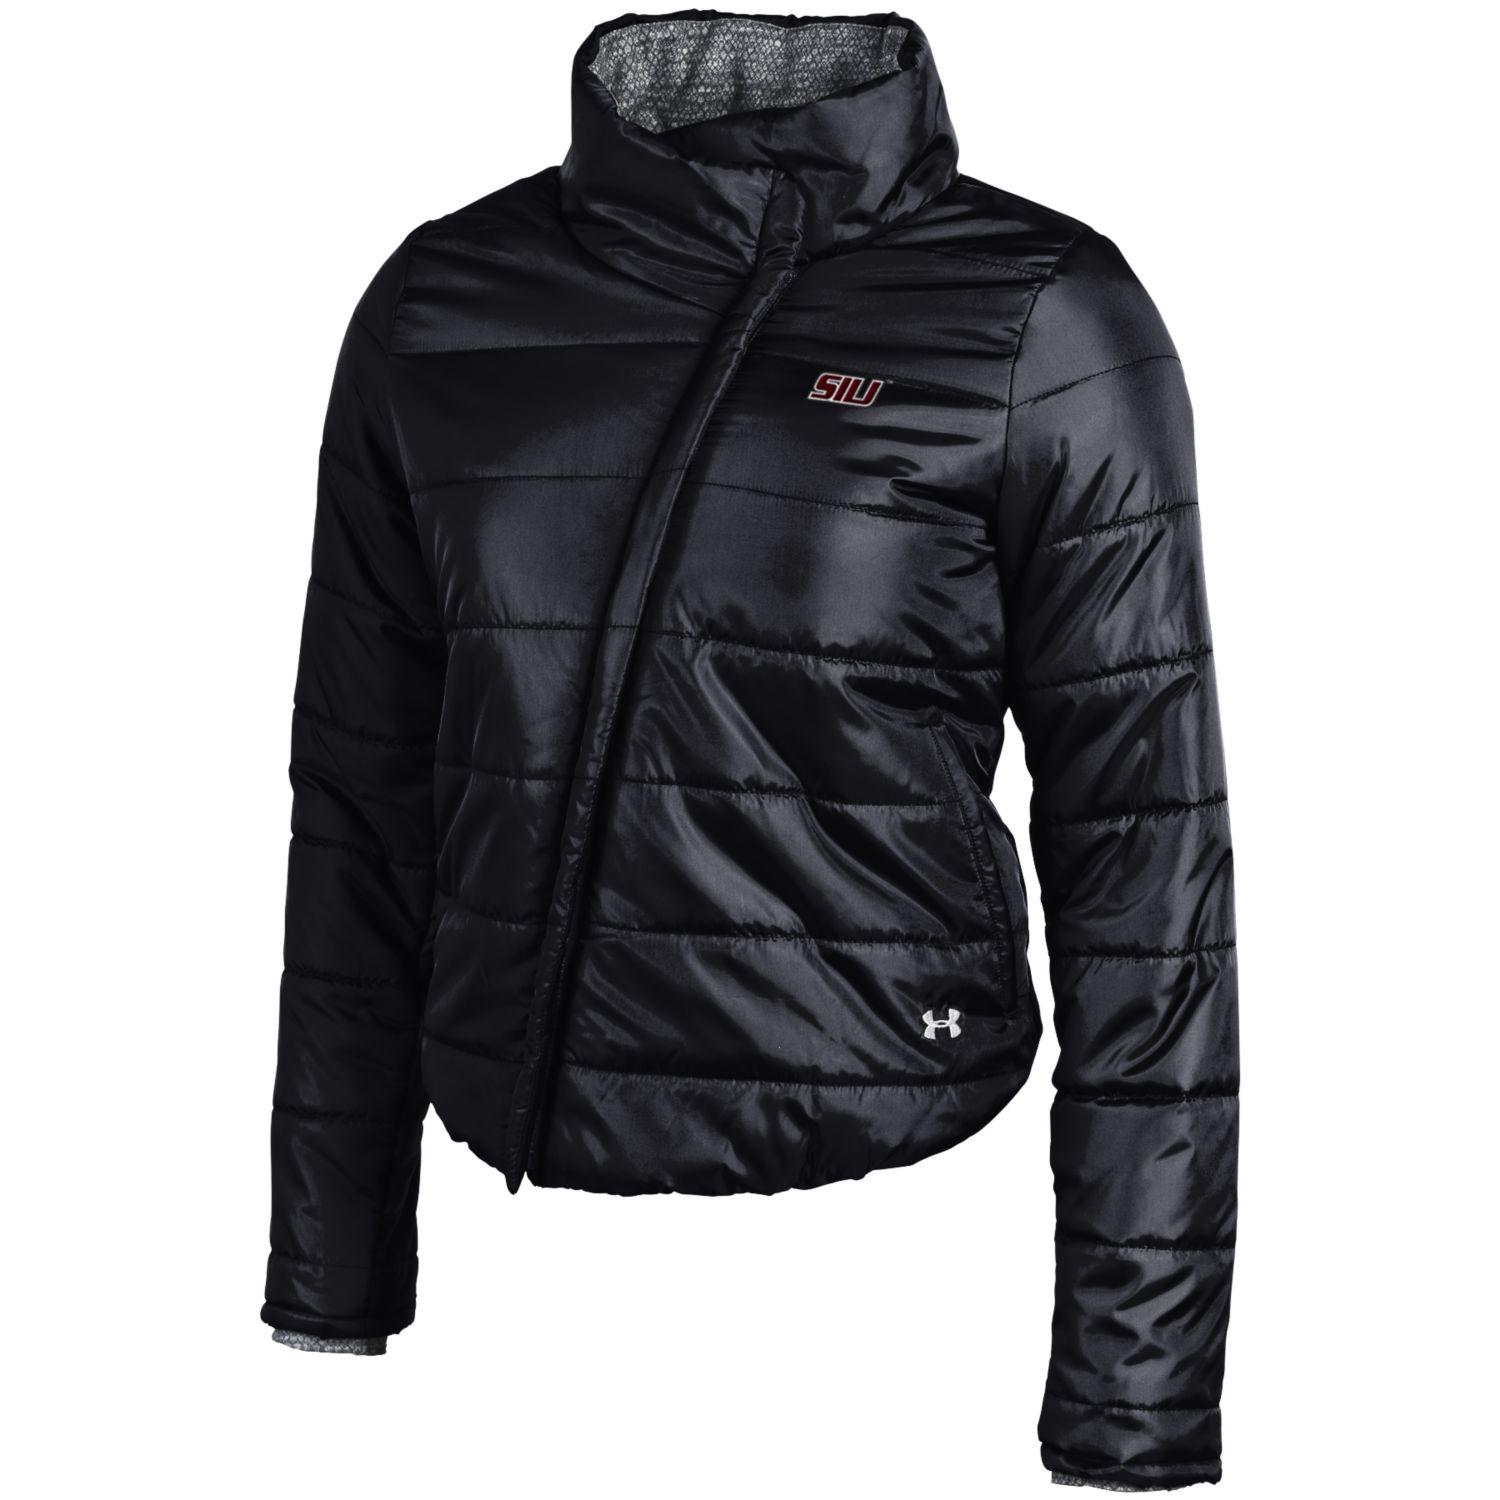 Image for the UNDER ARMOUR® SIU BLACKOUT WOMENS COWL PUFFER JACKET product